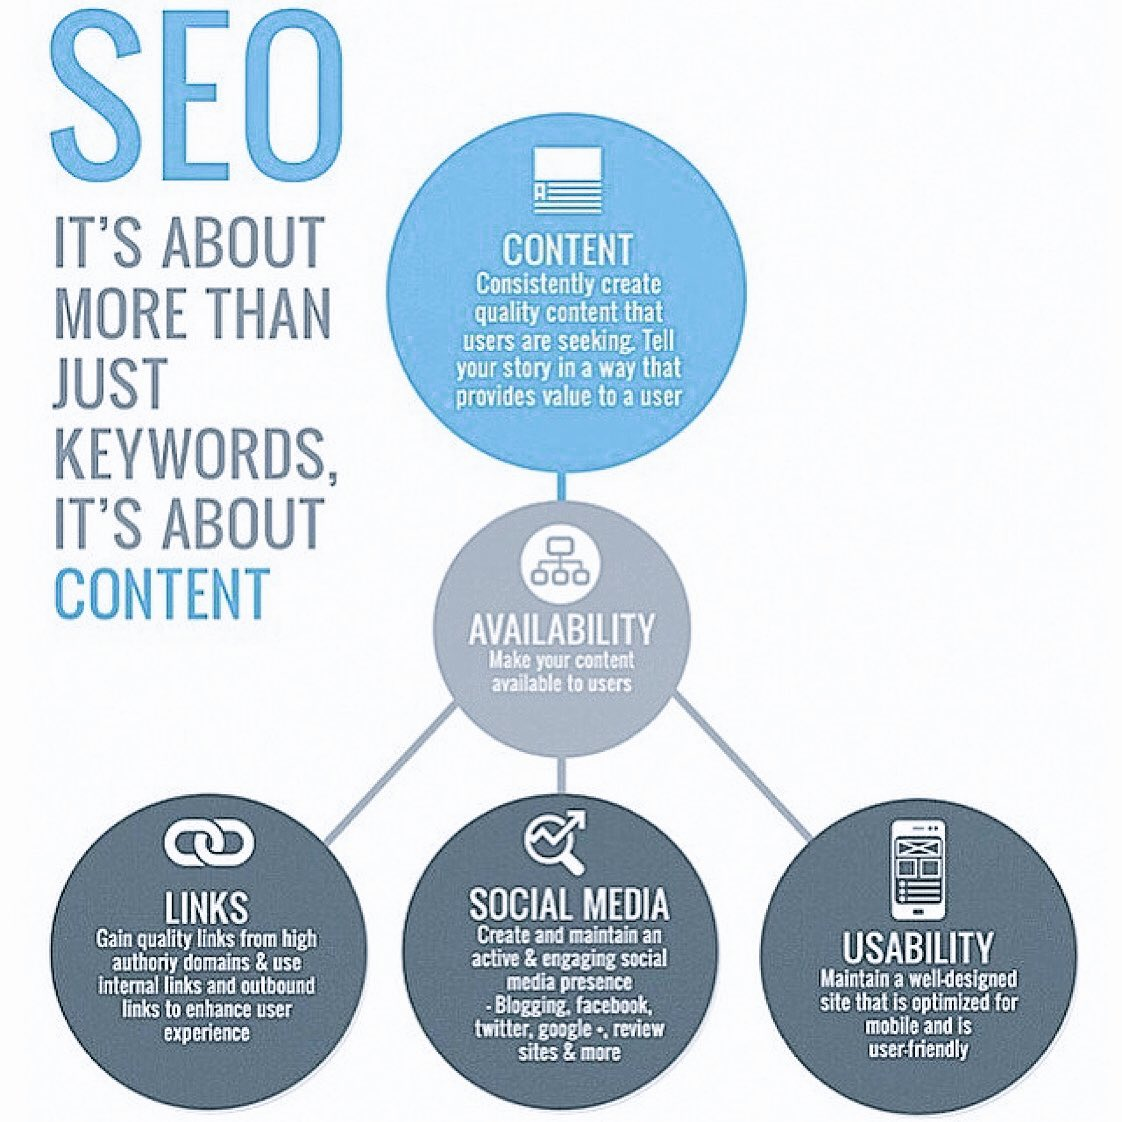 #SEO is more than keywords #DigitalMarketing #SMM #Mpgvip #defstar5 #Marketing #SMO #Contentmarketing #Makeyourownlane #GrowthHacking #SEM #SocialMediaMarketing   https://www. w3era.com  &nbsp;  <br>http://pic.twitter.com/gwJoDcbyjV